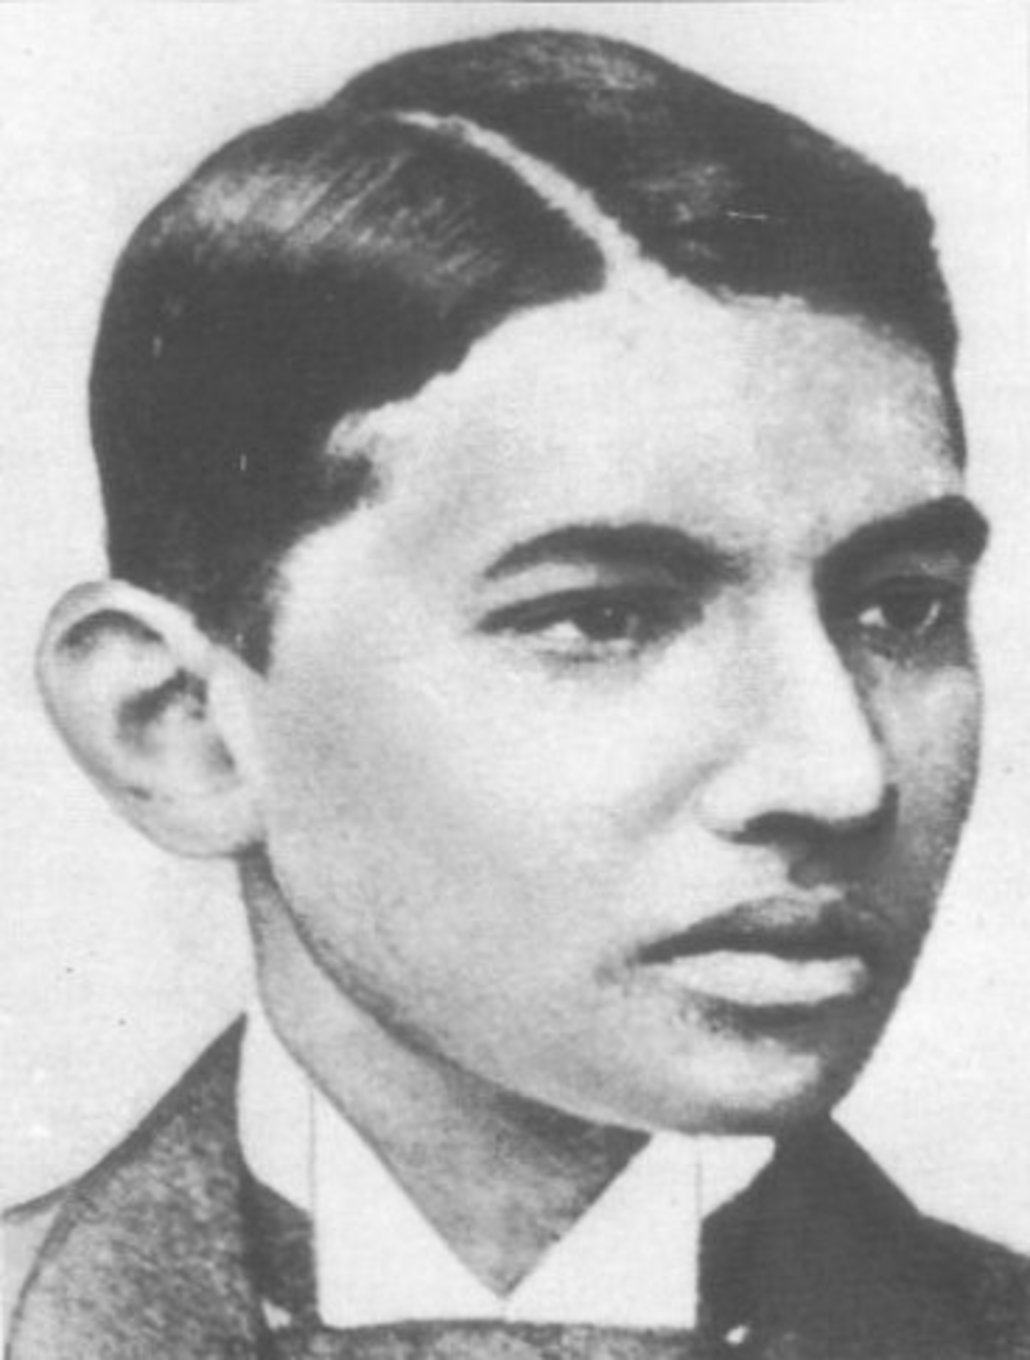 Gandhi as a law student in London.